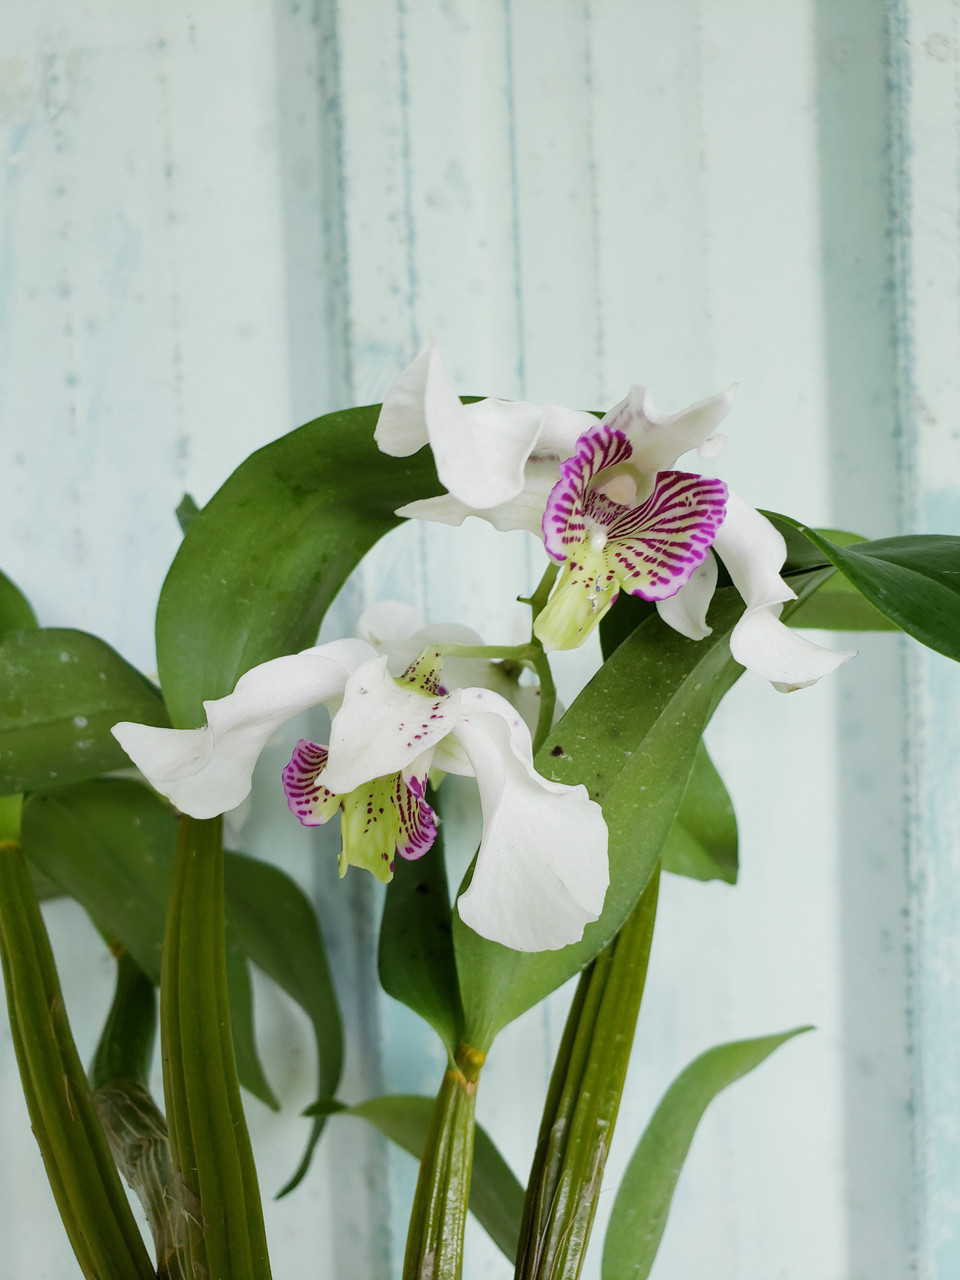 Orchid In Bloom Miscellaneous Variety Hana Tropicals Buy